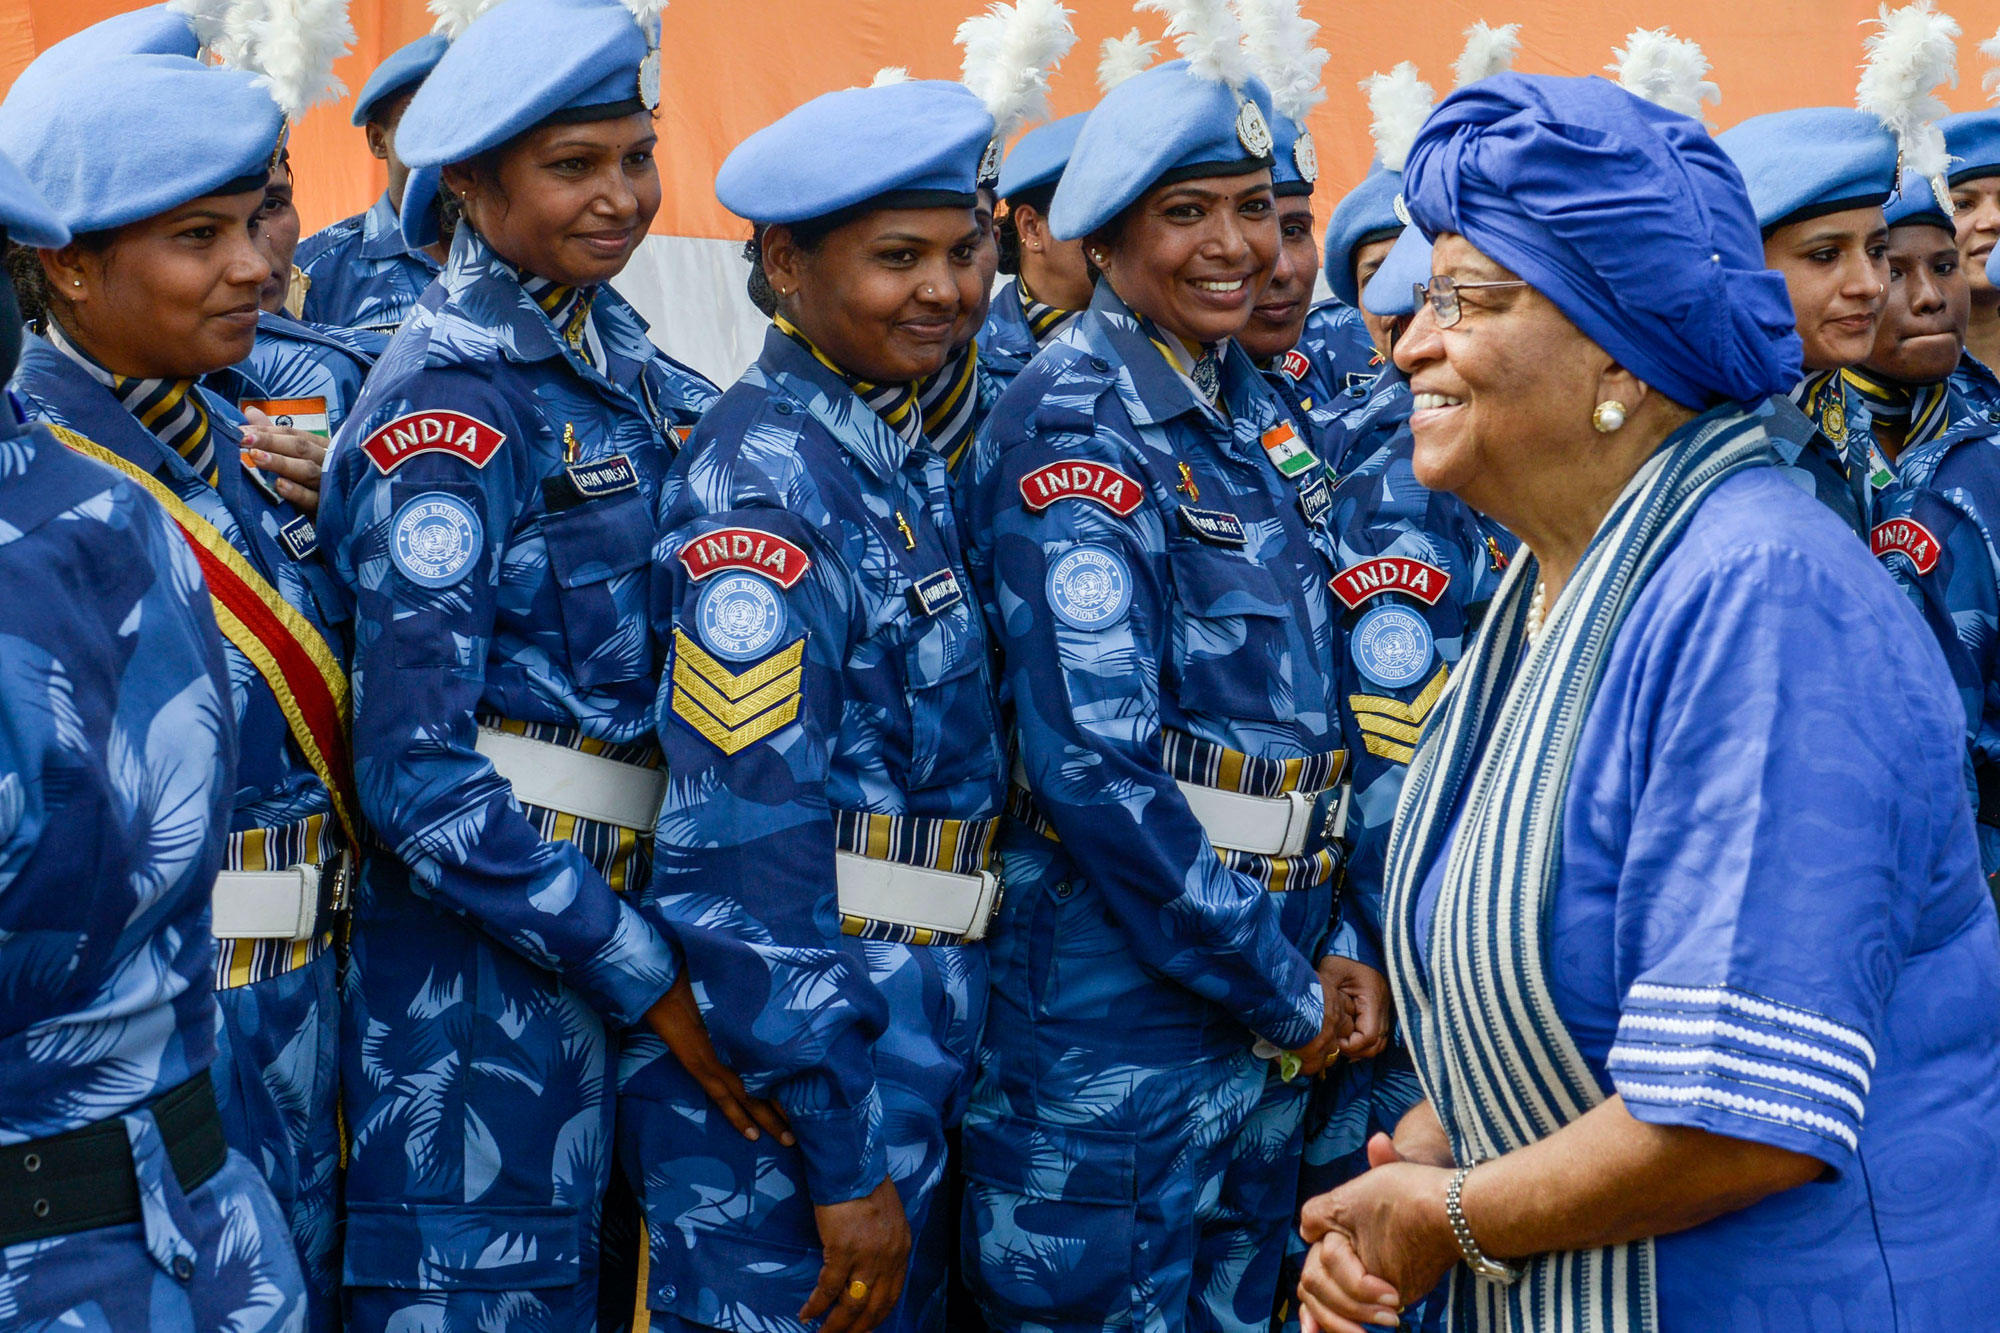 [President Ellen Johnson-Sirleaf (left) with members of the all-female Indian Formed Police Unit serving with the UN Mission in Liberia in February 2016. Photo: Emmanuel Tobey/UNMIL]